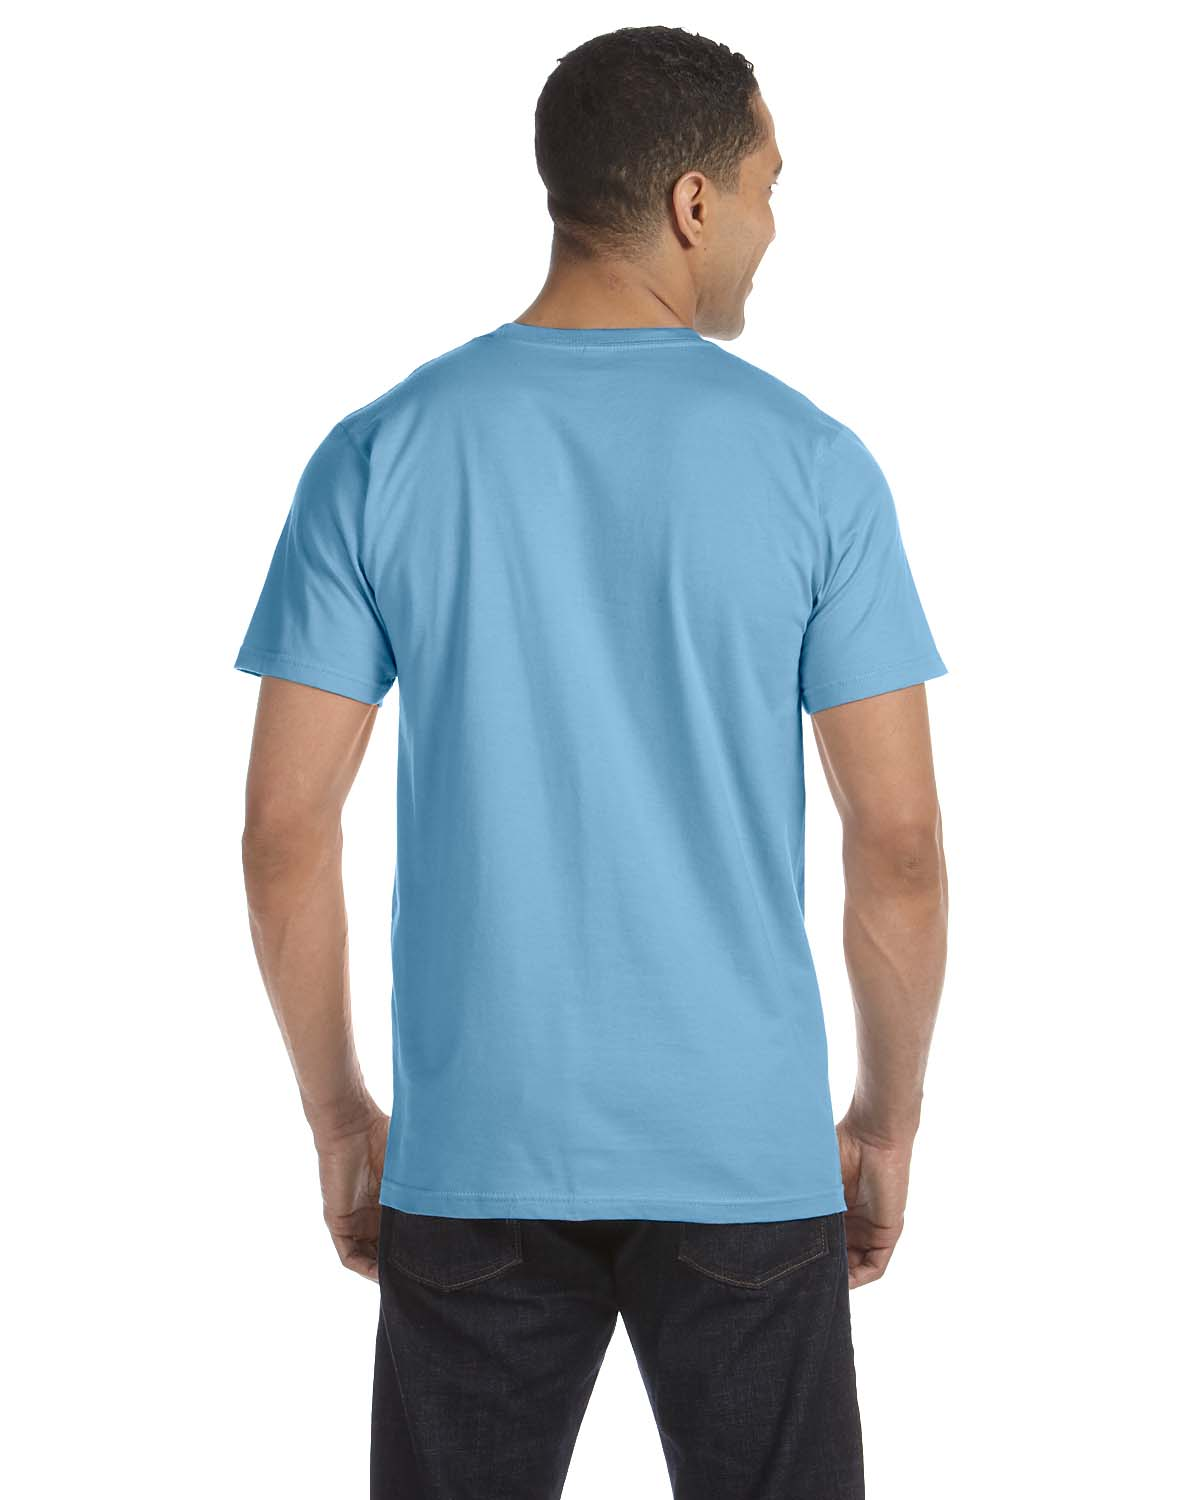 New anvil mens 39 eco friendly 100 organic cotton for Where are anvil shirts made